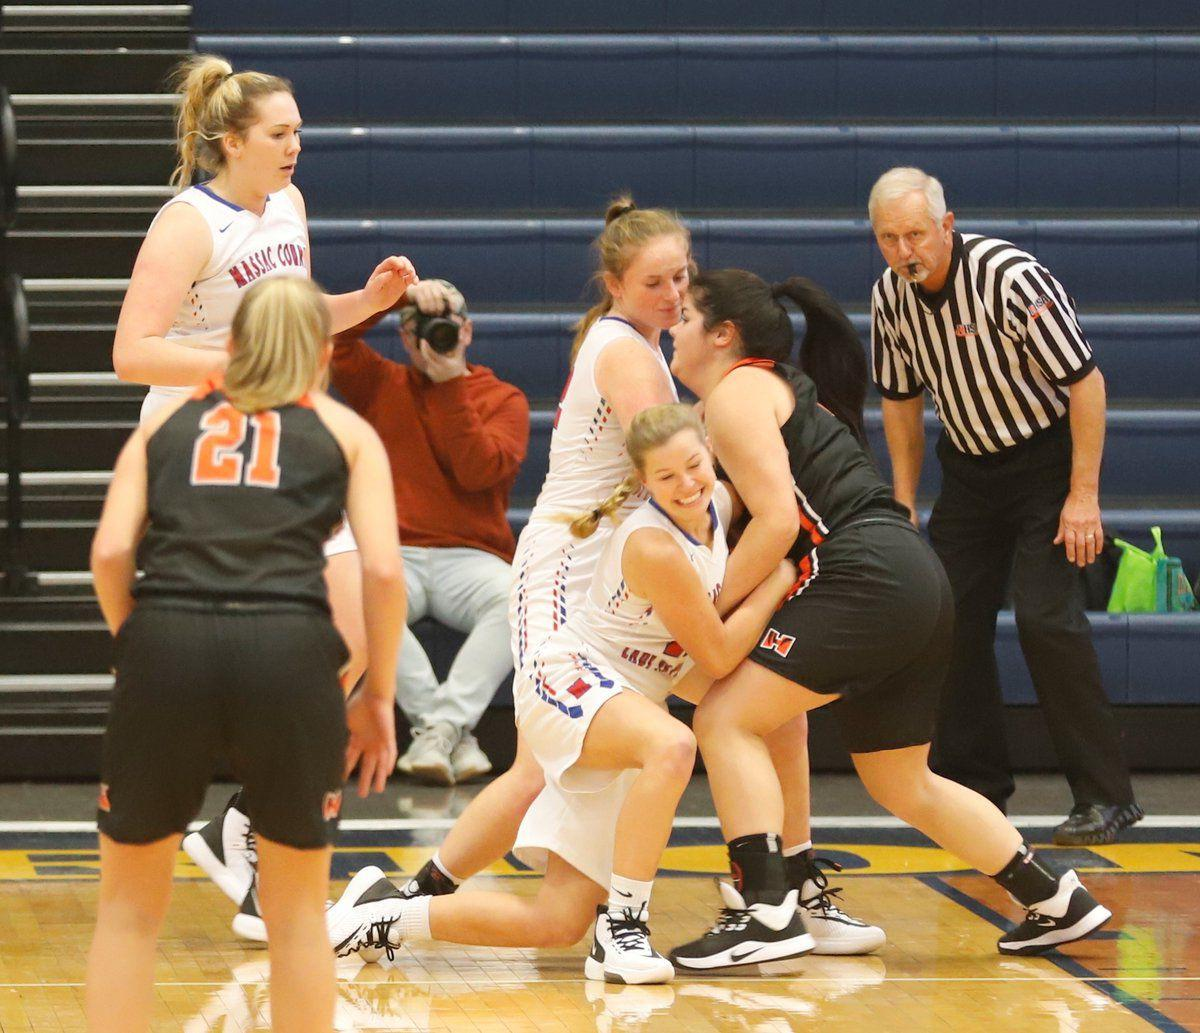 Lady Pats open 3-1 at Marion tourney